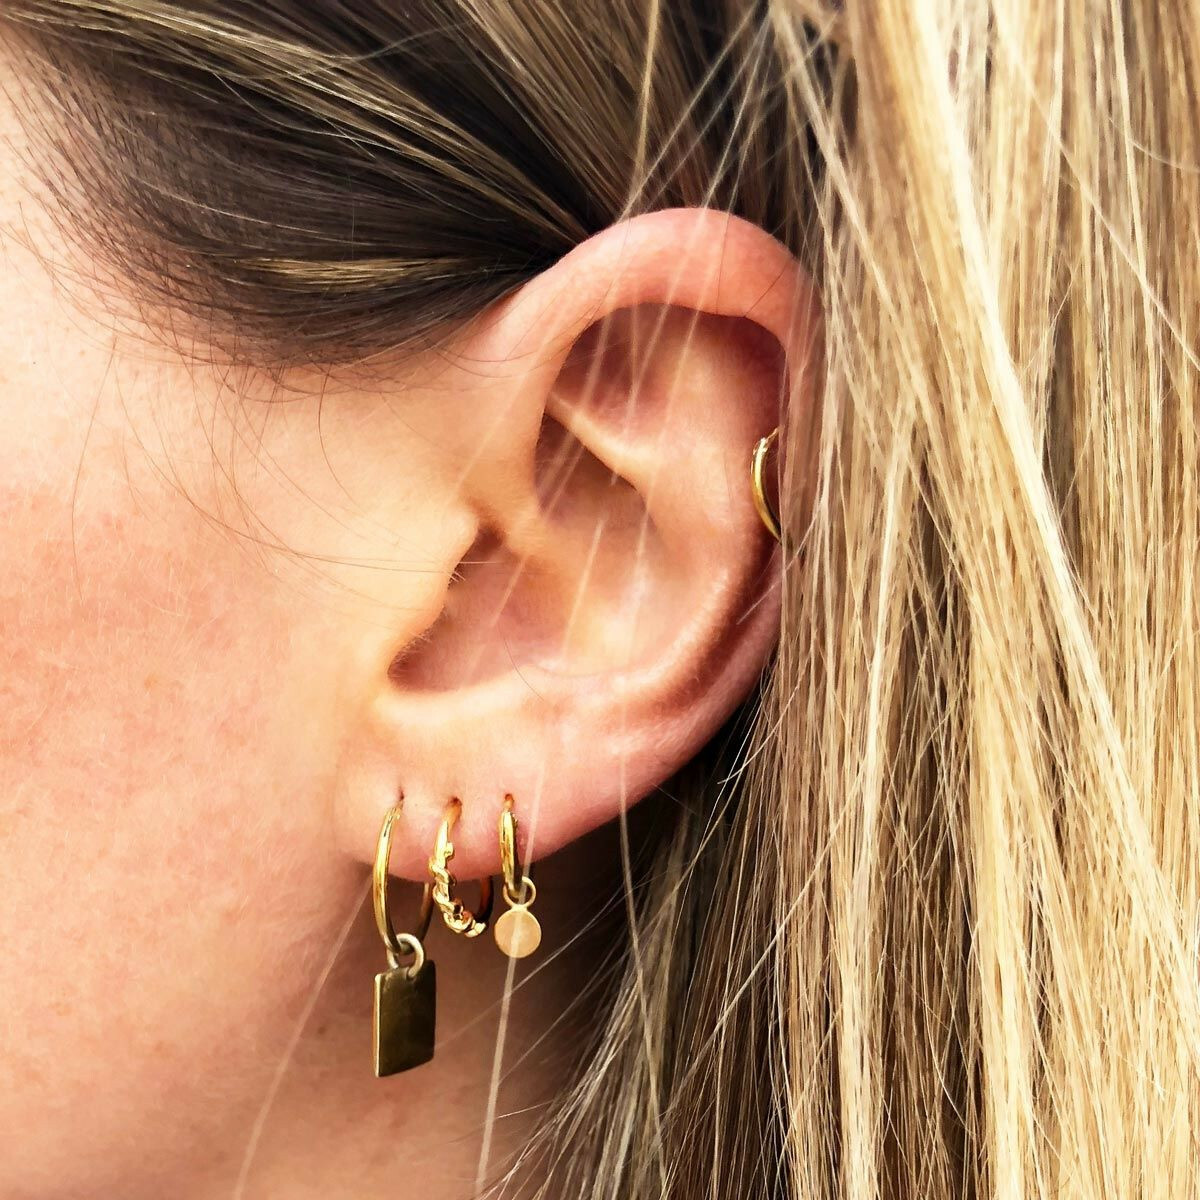 SMALL GOLD SPIRAL HOOPS